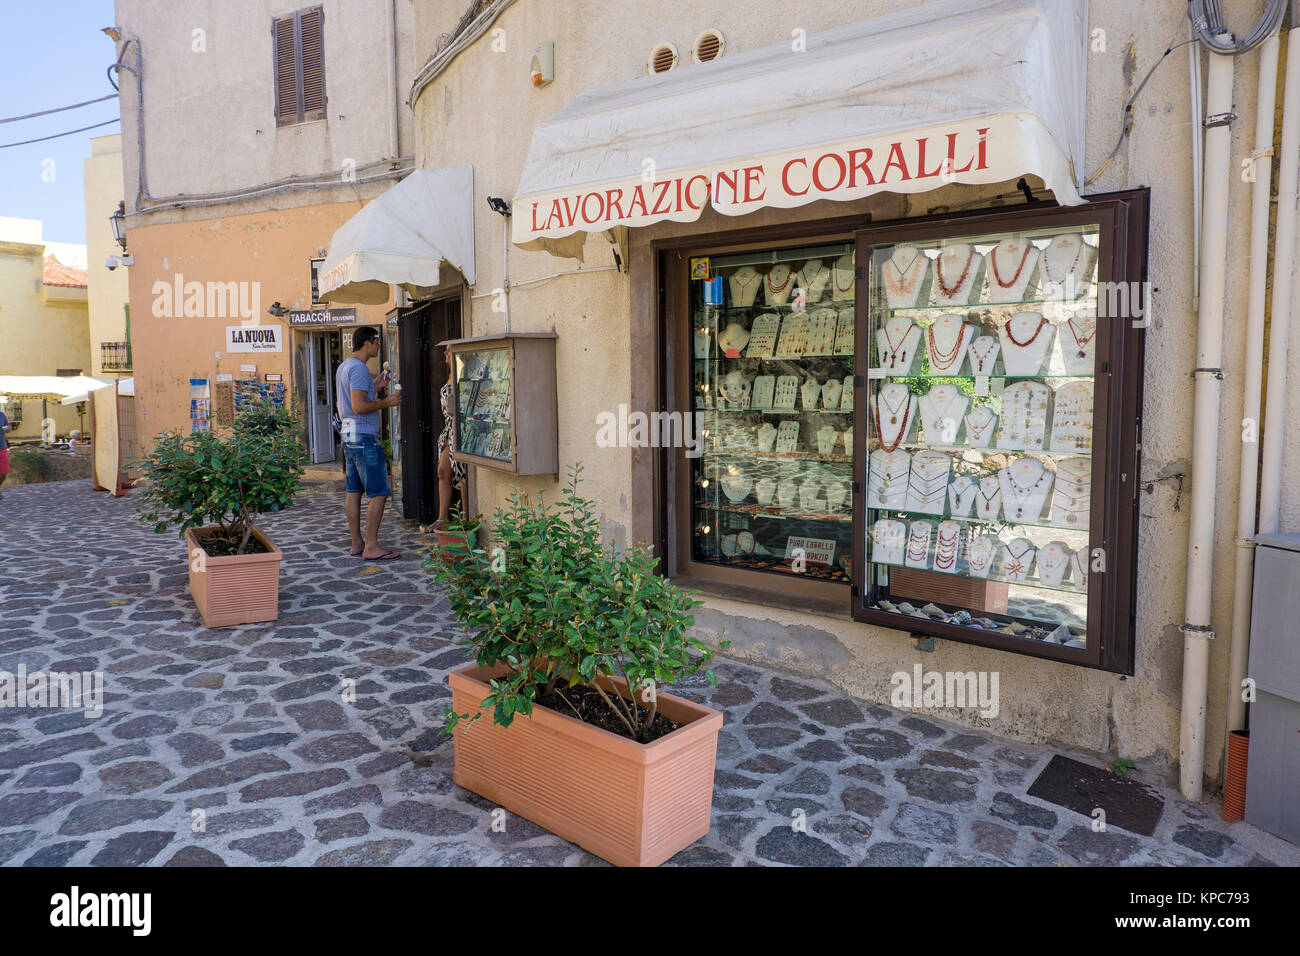 Coralli shop, jewellery made of red corals, jewellery shop at Alghero, Sardinia, Italy, Mediterranean sea, Europe - Stock Image